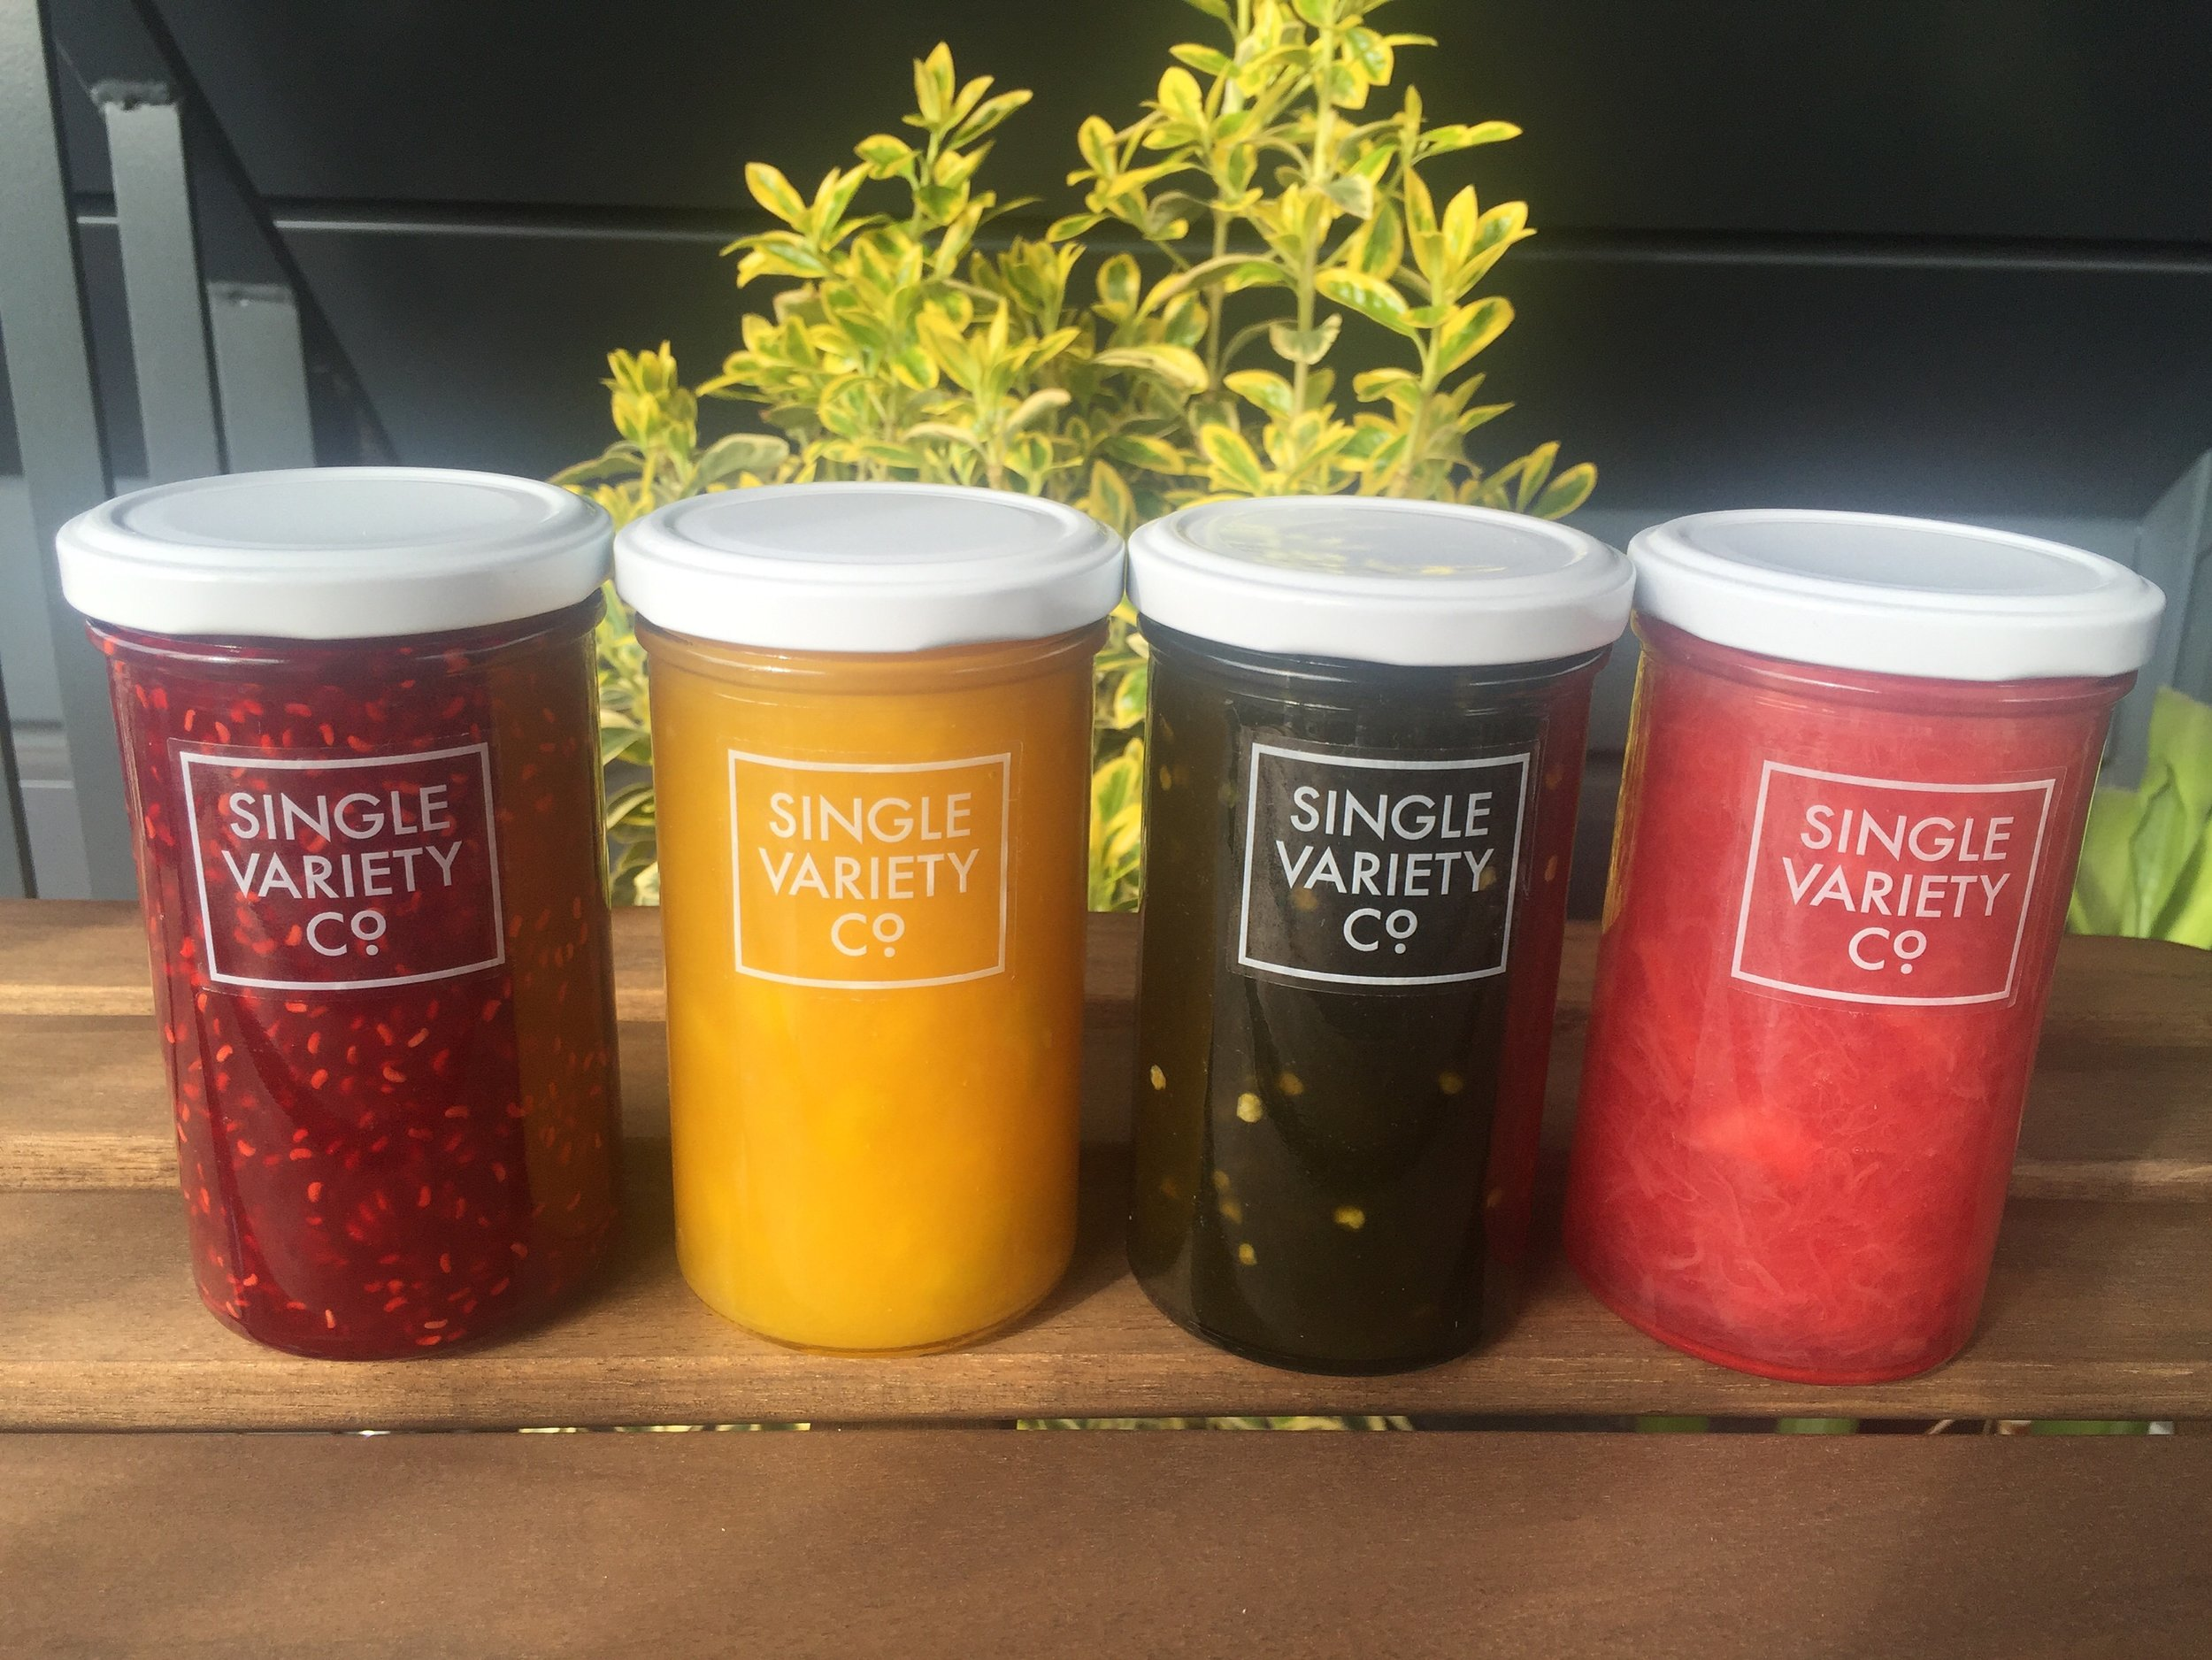 The original Single Variety Co range!